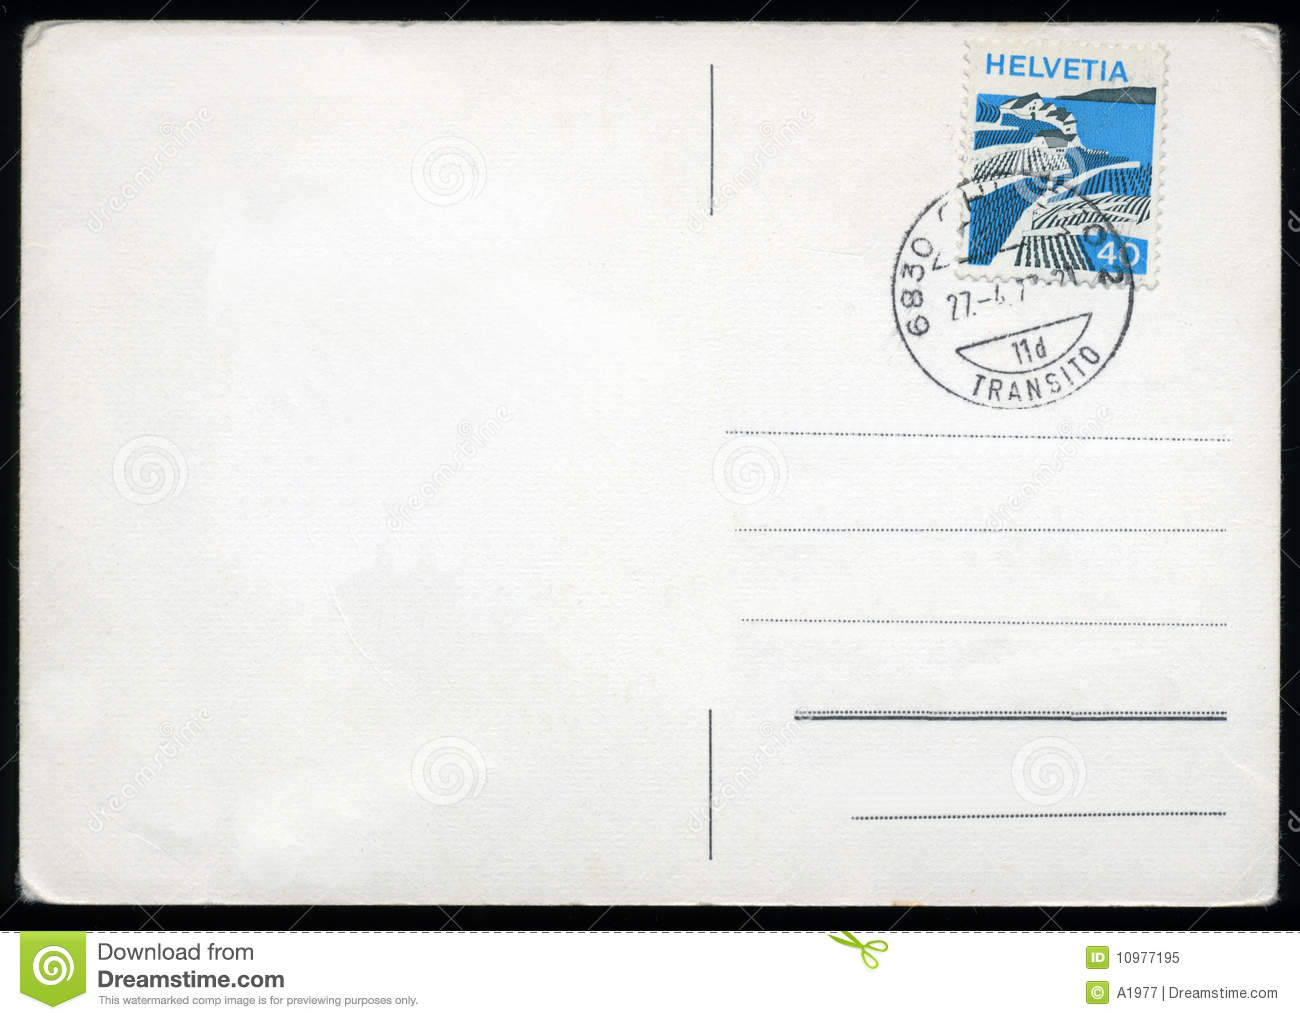 Blank Postcard From Switzerland With Stamp And Postage Meter